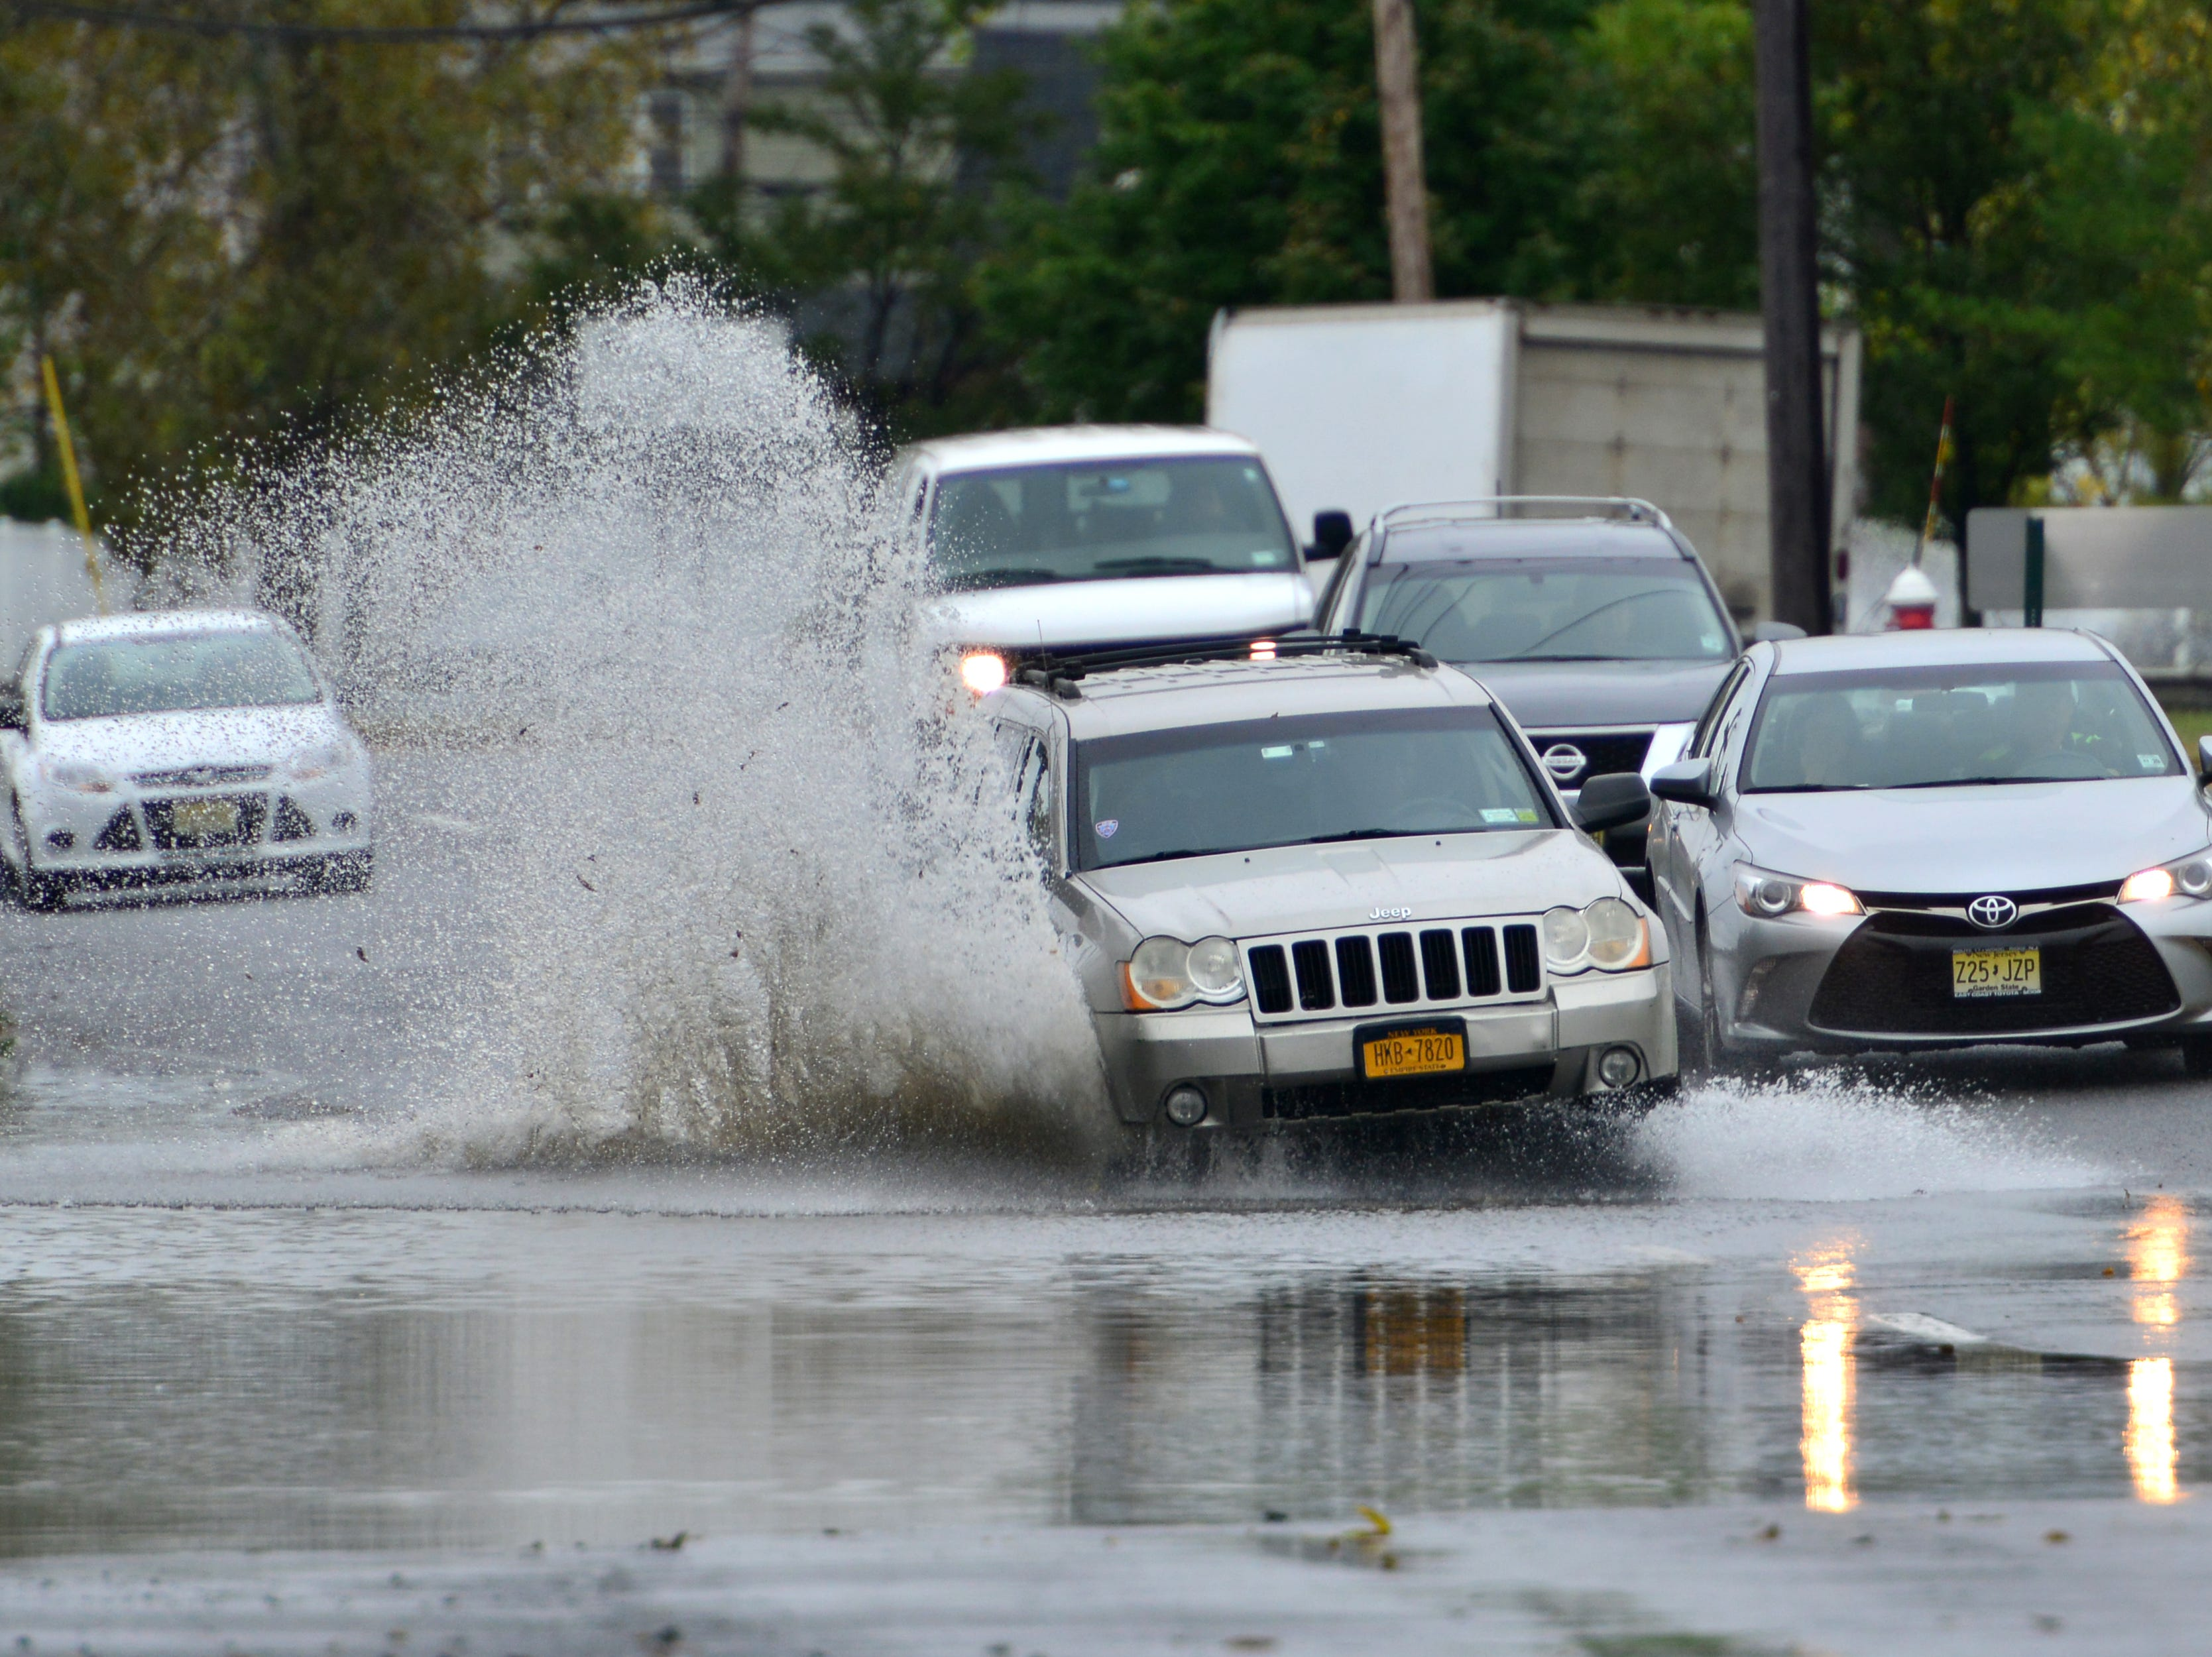 Cars pass through the flooded right lane of River St in Little Ferry on Thursday October 11, 2018.